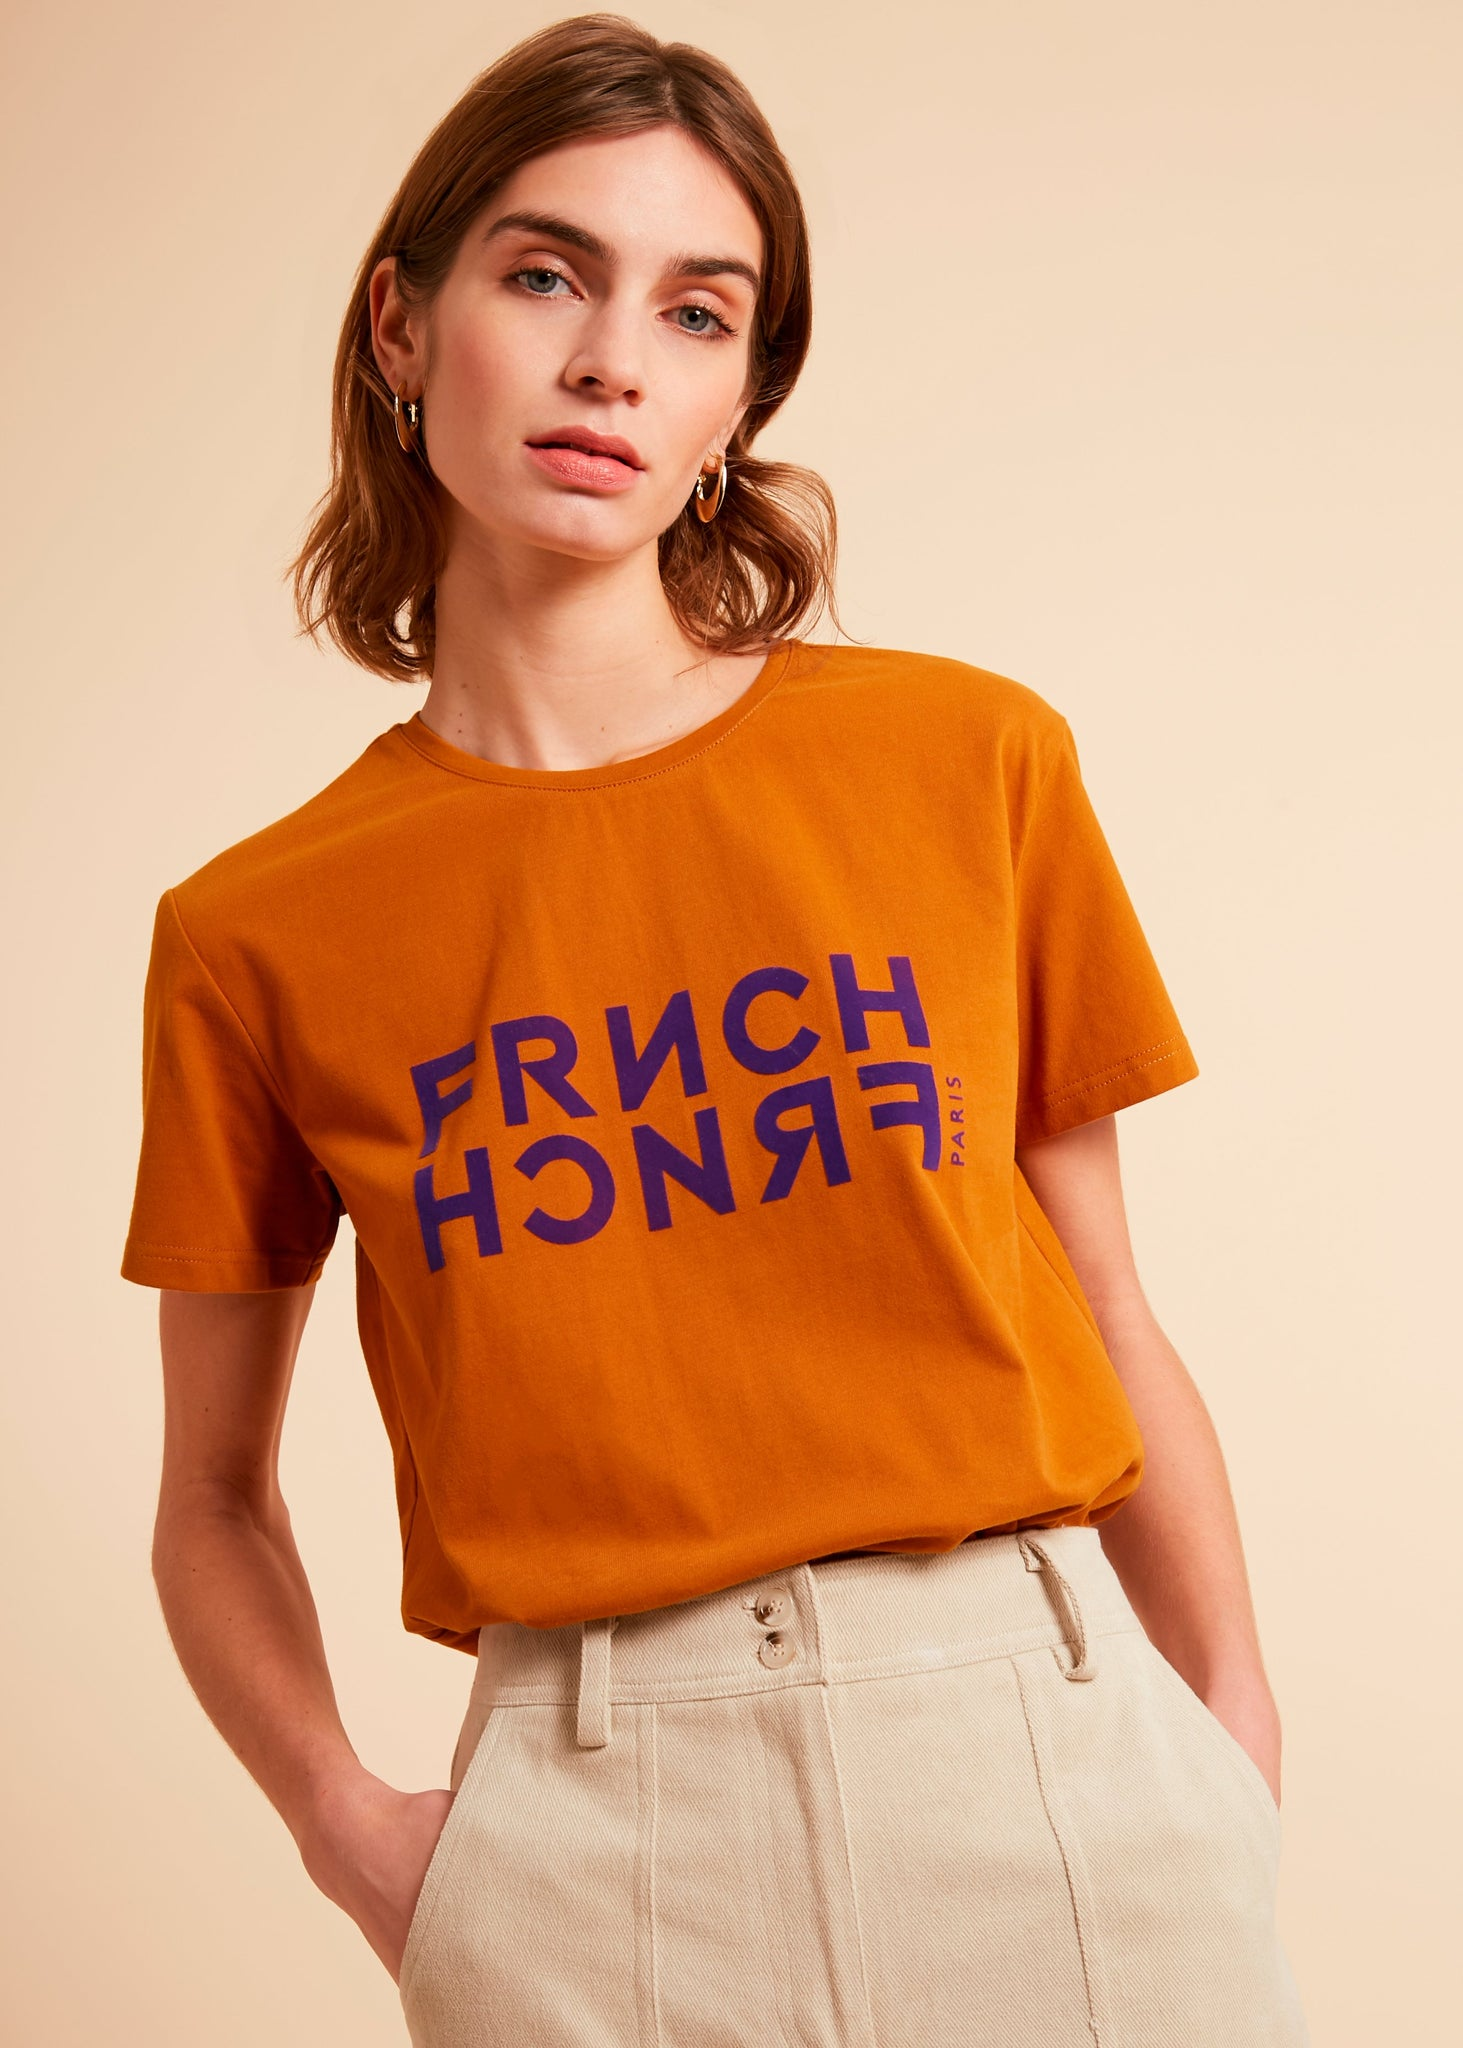 Frnch Frnch t-shirt gold